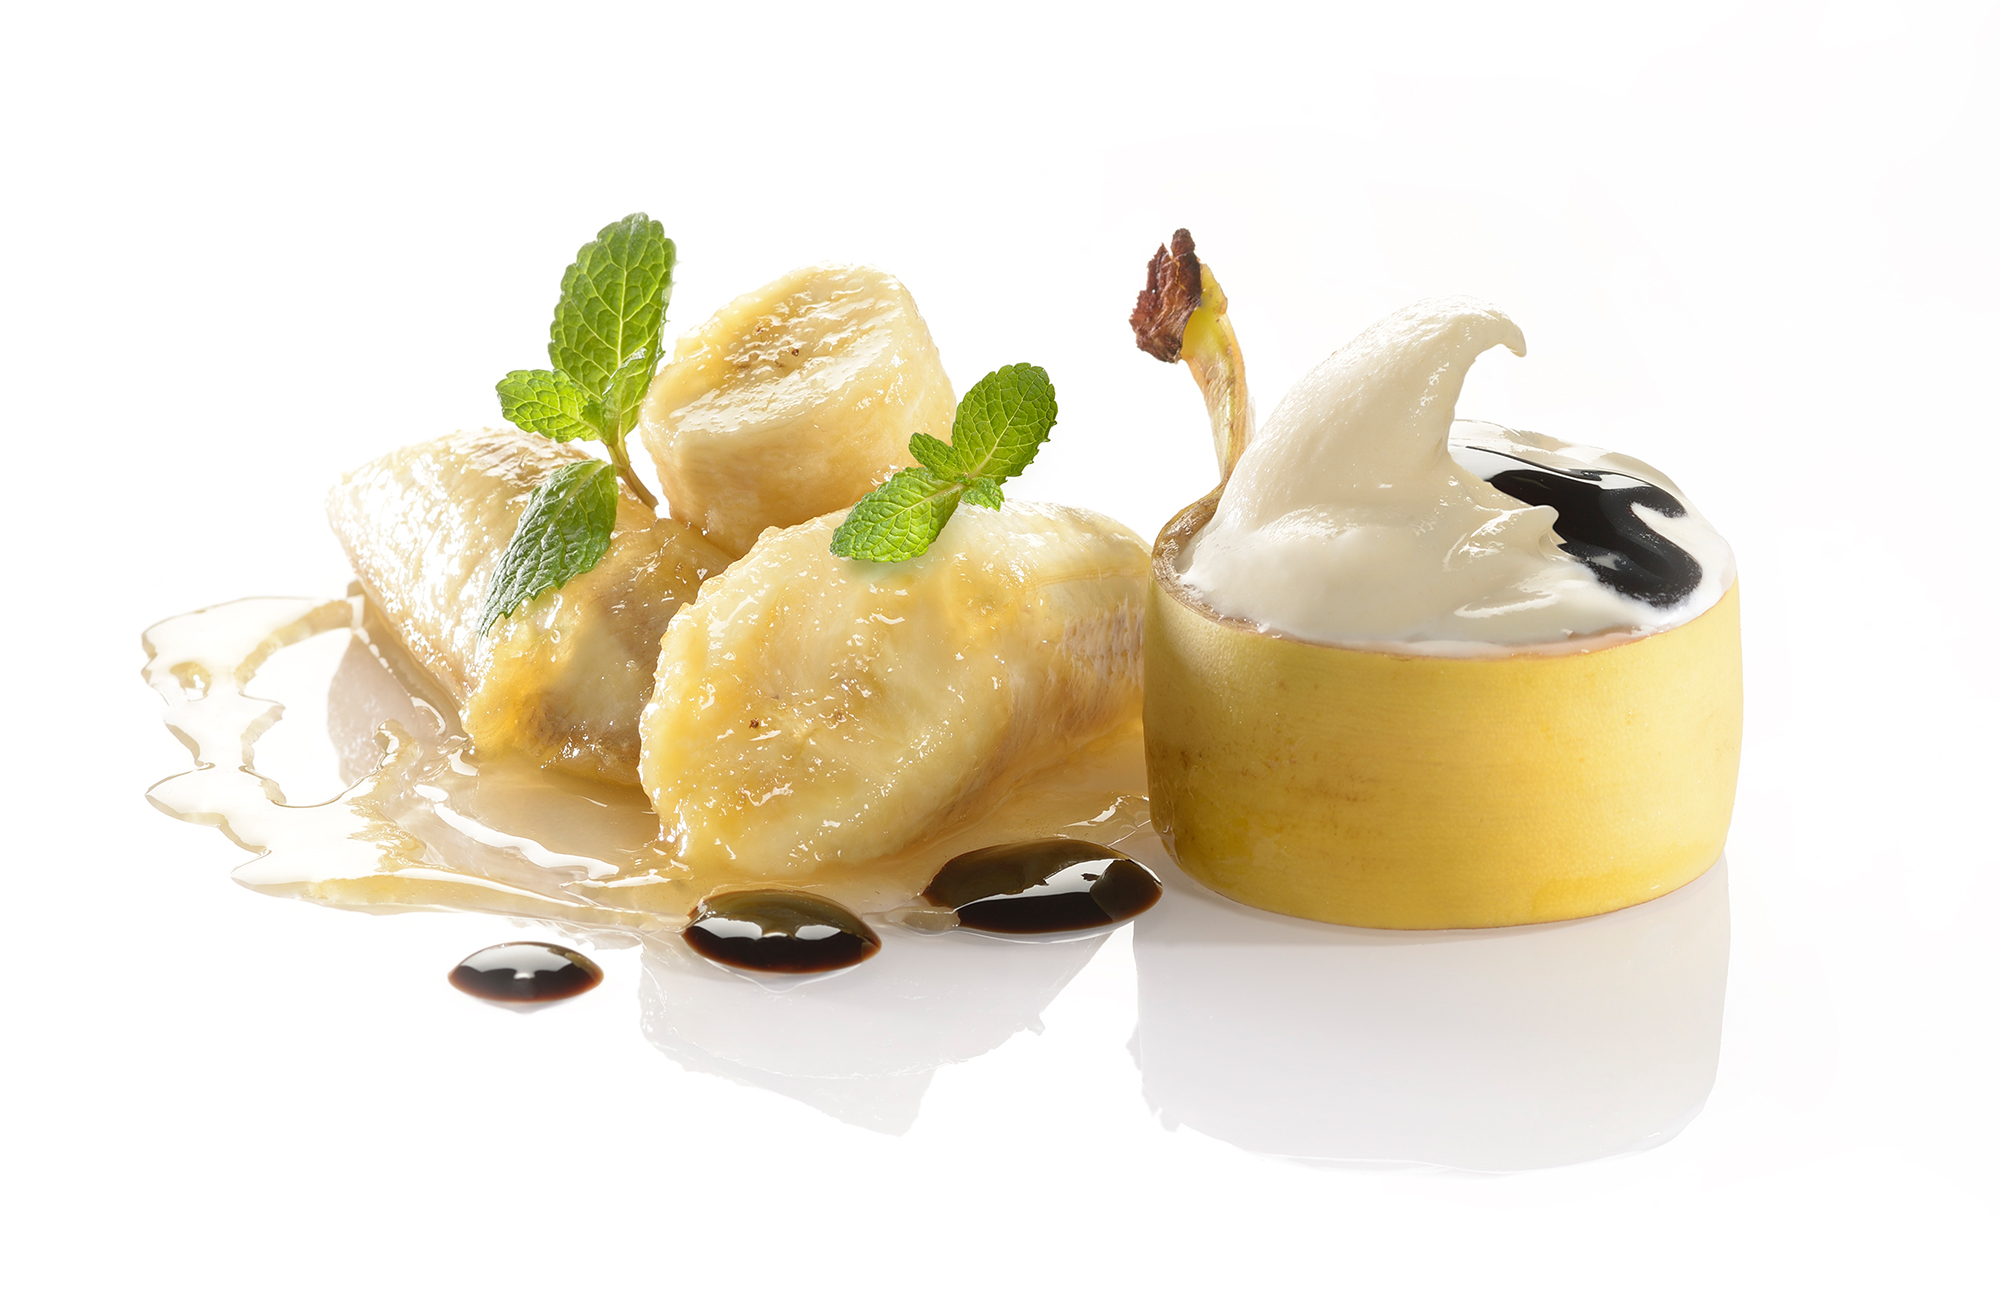 Bananas with rum caramel sauce and ice cream - Ponti